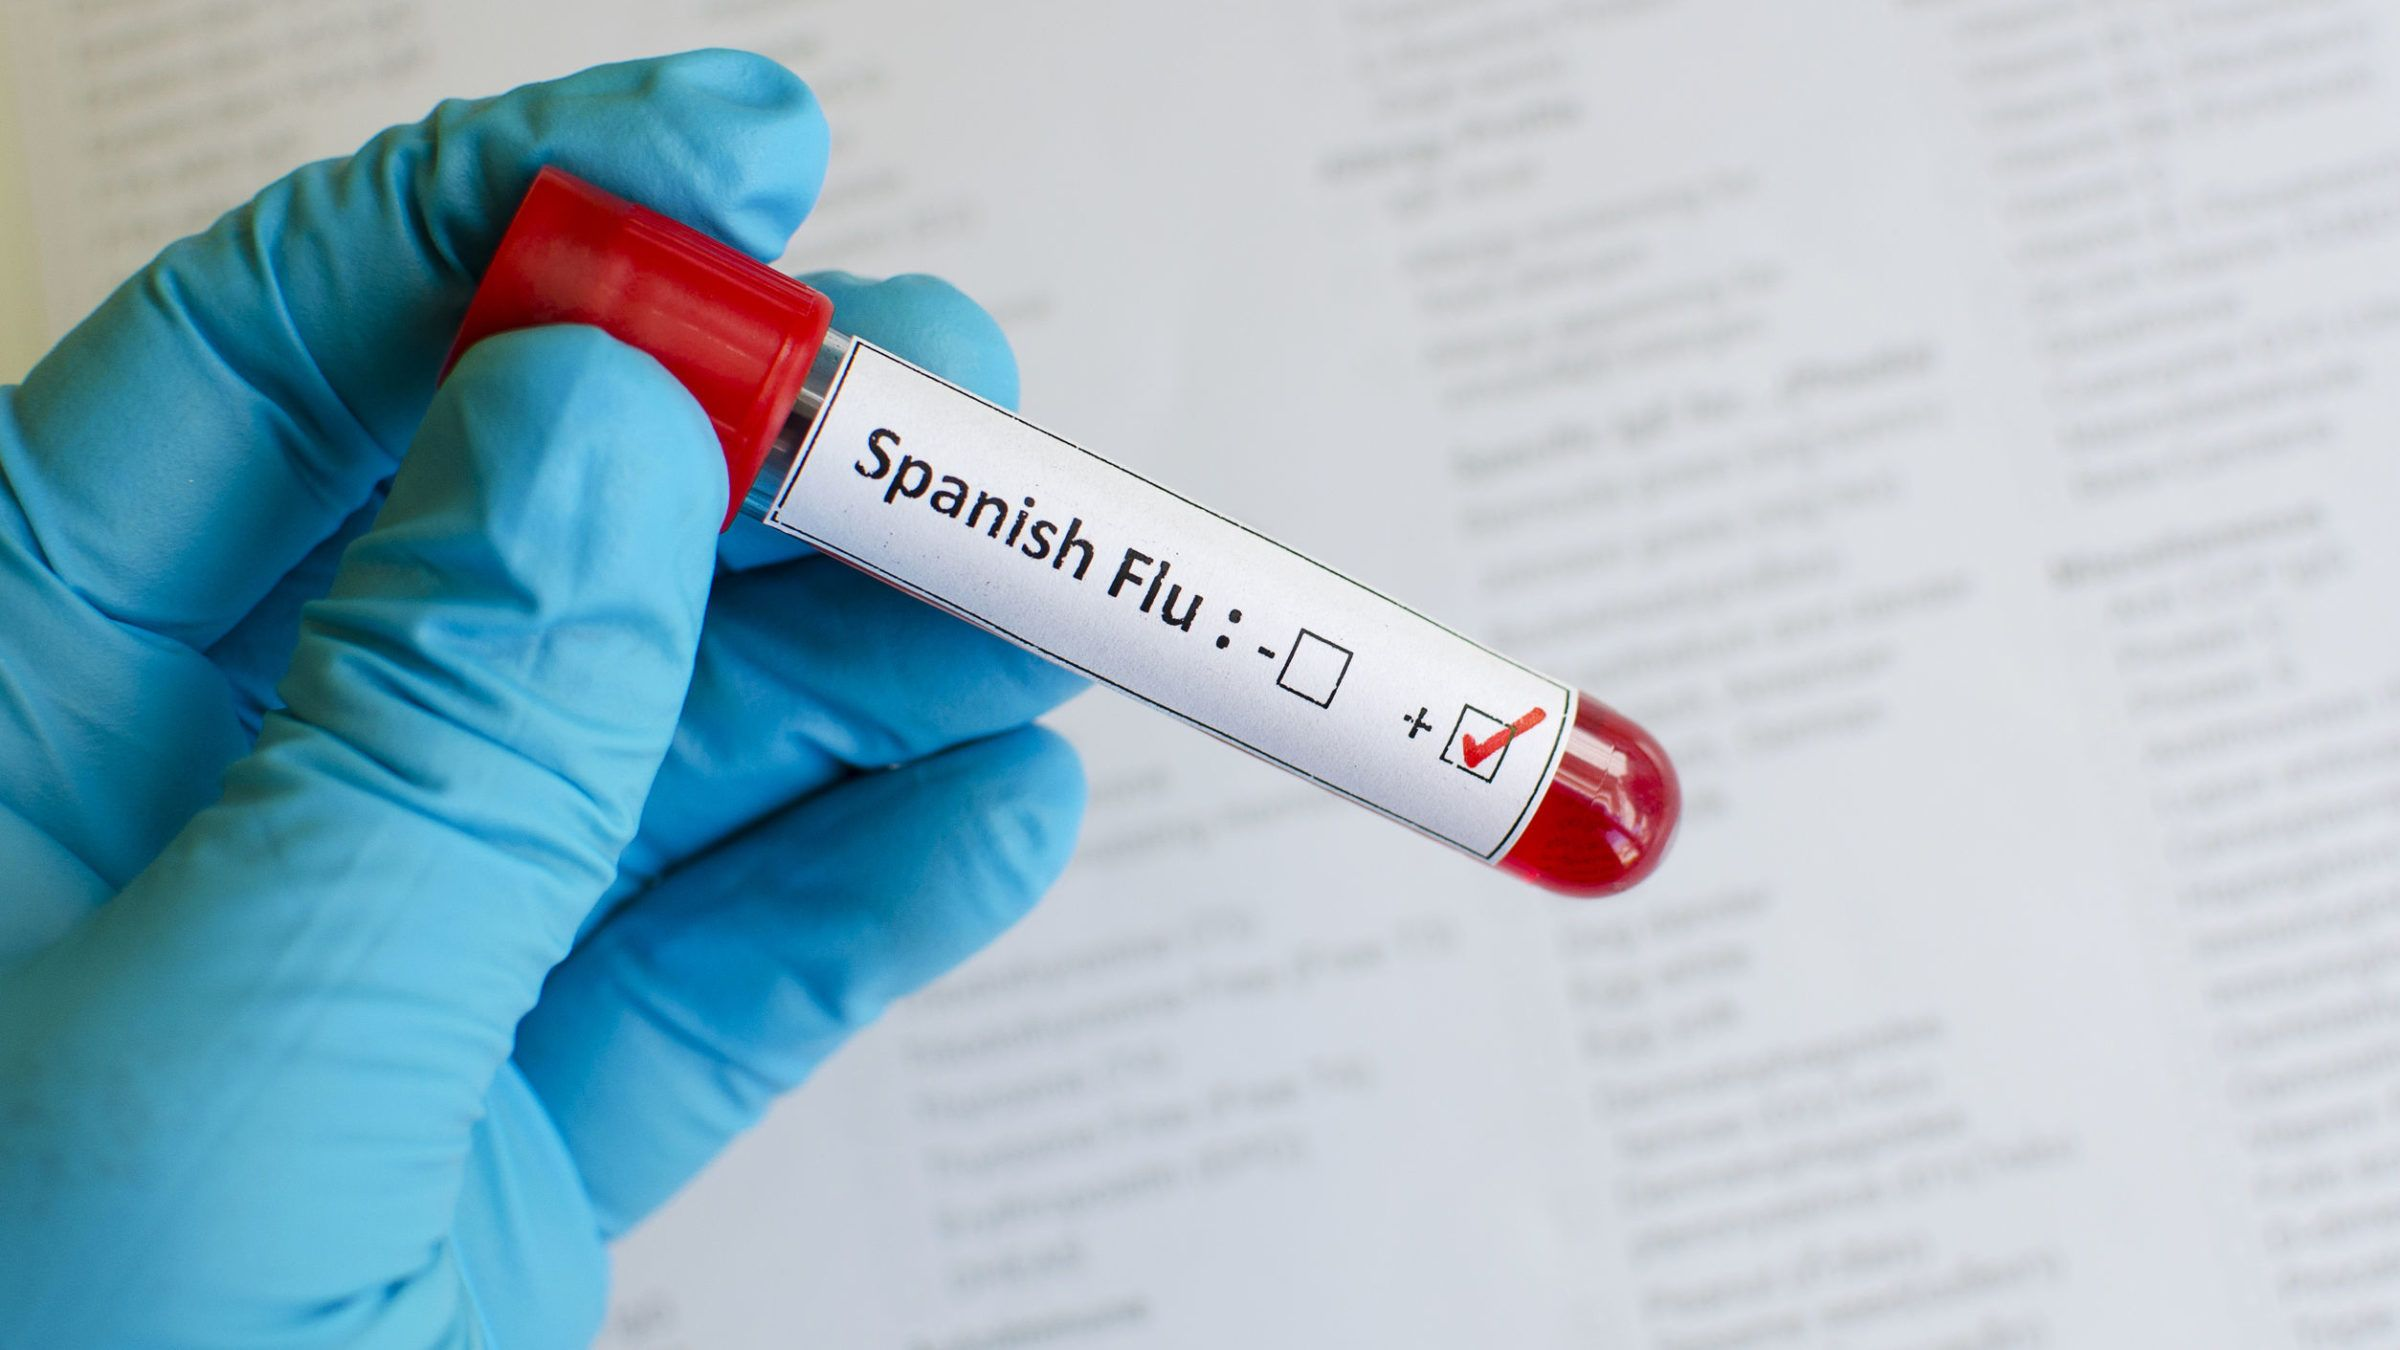 REASON – Spanish Flu Experience Might Indicate That Public Policy Interventions Don't Have Long-Term Economic Effects